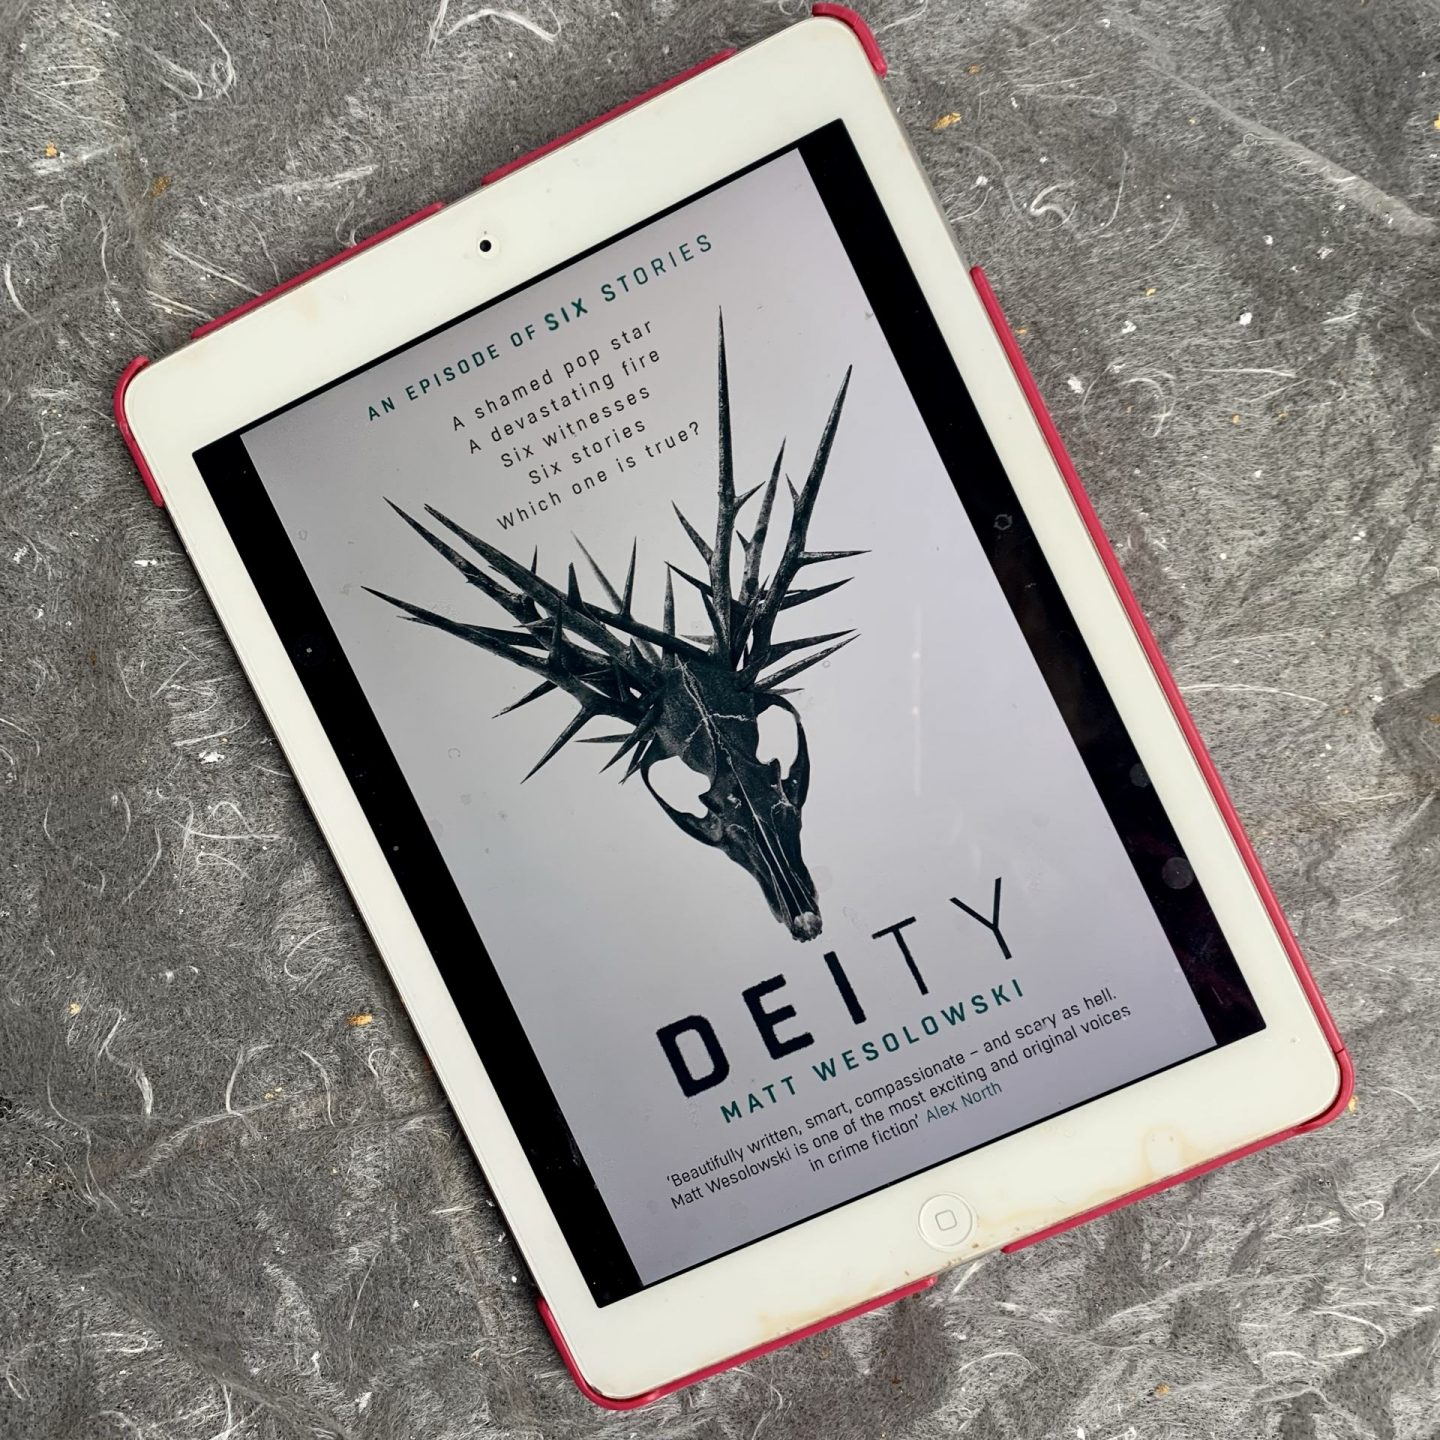 Deity; a sinister thriller seeped in folklore